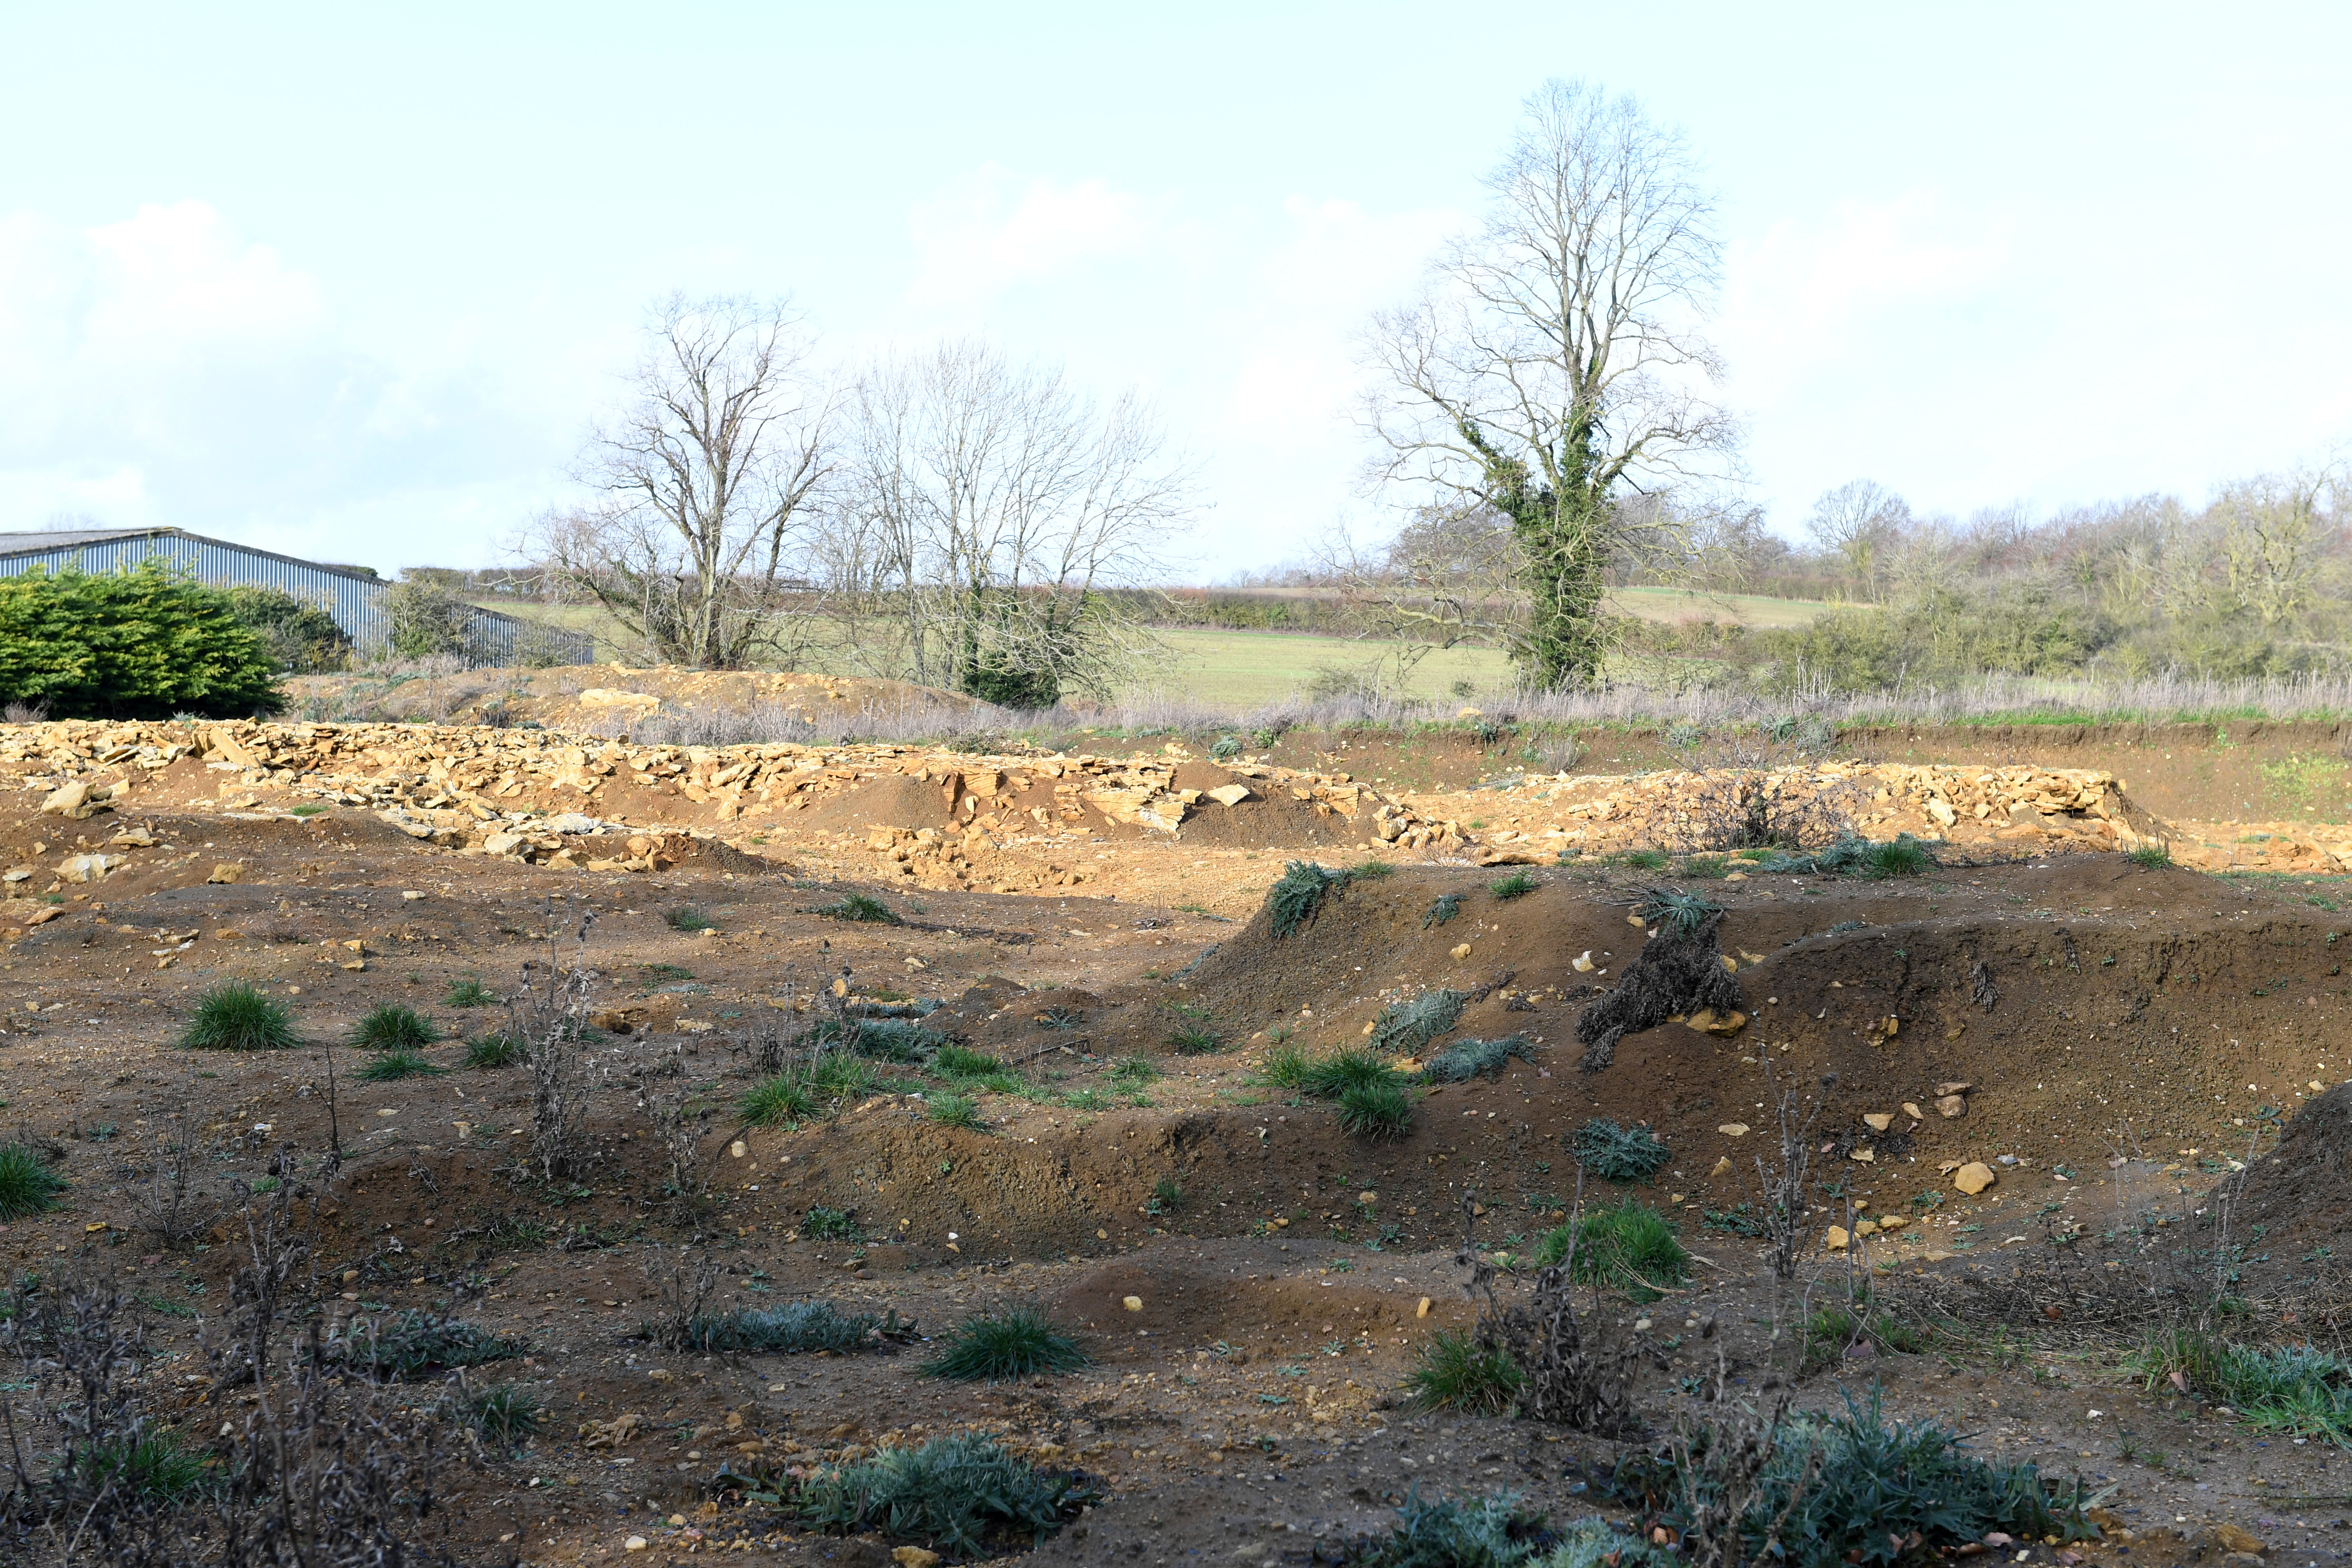 The site in Buckingham, Bucks where remains of 40 bodies including some with their hands tied behind their backs have been found buried in shallow graves. See SWNS copy SWCAskeletons: The grisly remains of 40 bodies including some with their hands tied behind their backs have been found buried in shallow graves on a building site. The shocking discovery of 42 skeletons was made during ground works for a new development of 72 retirement flats on former farmland in Buckingham, Bucks. It is thought the skeletons could date from Anglo Saxon times or from during the English Civil War or possibly even criminals who were hanged on the gallows.